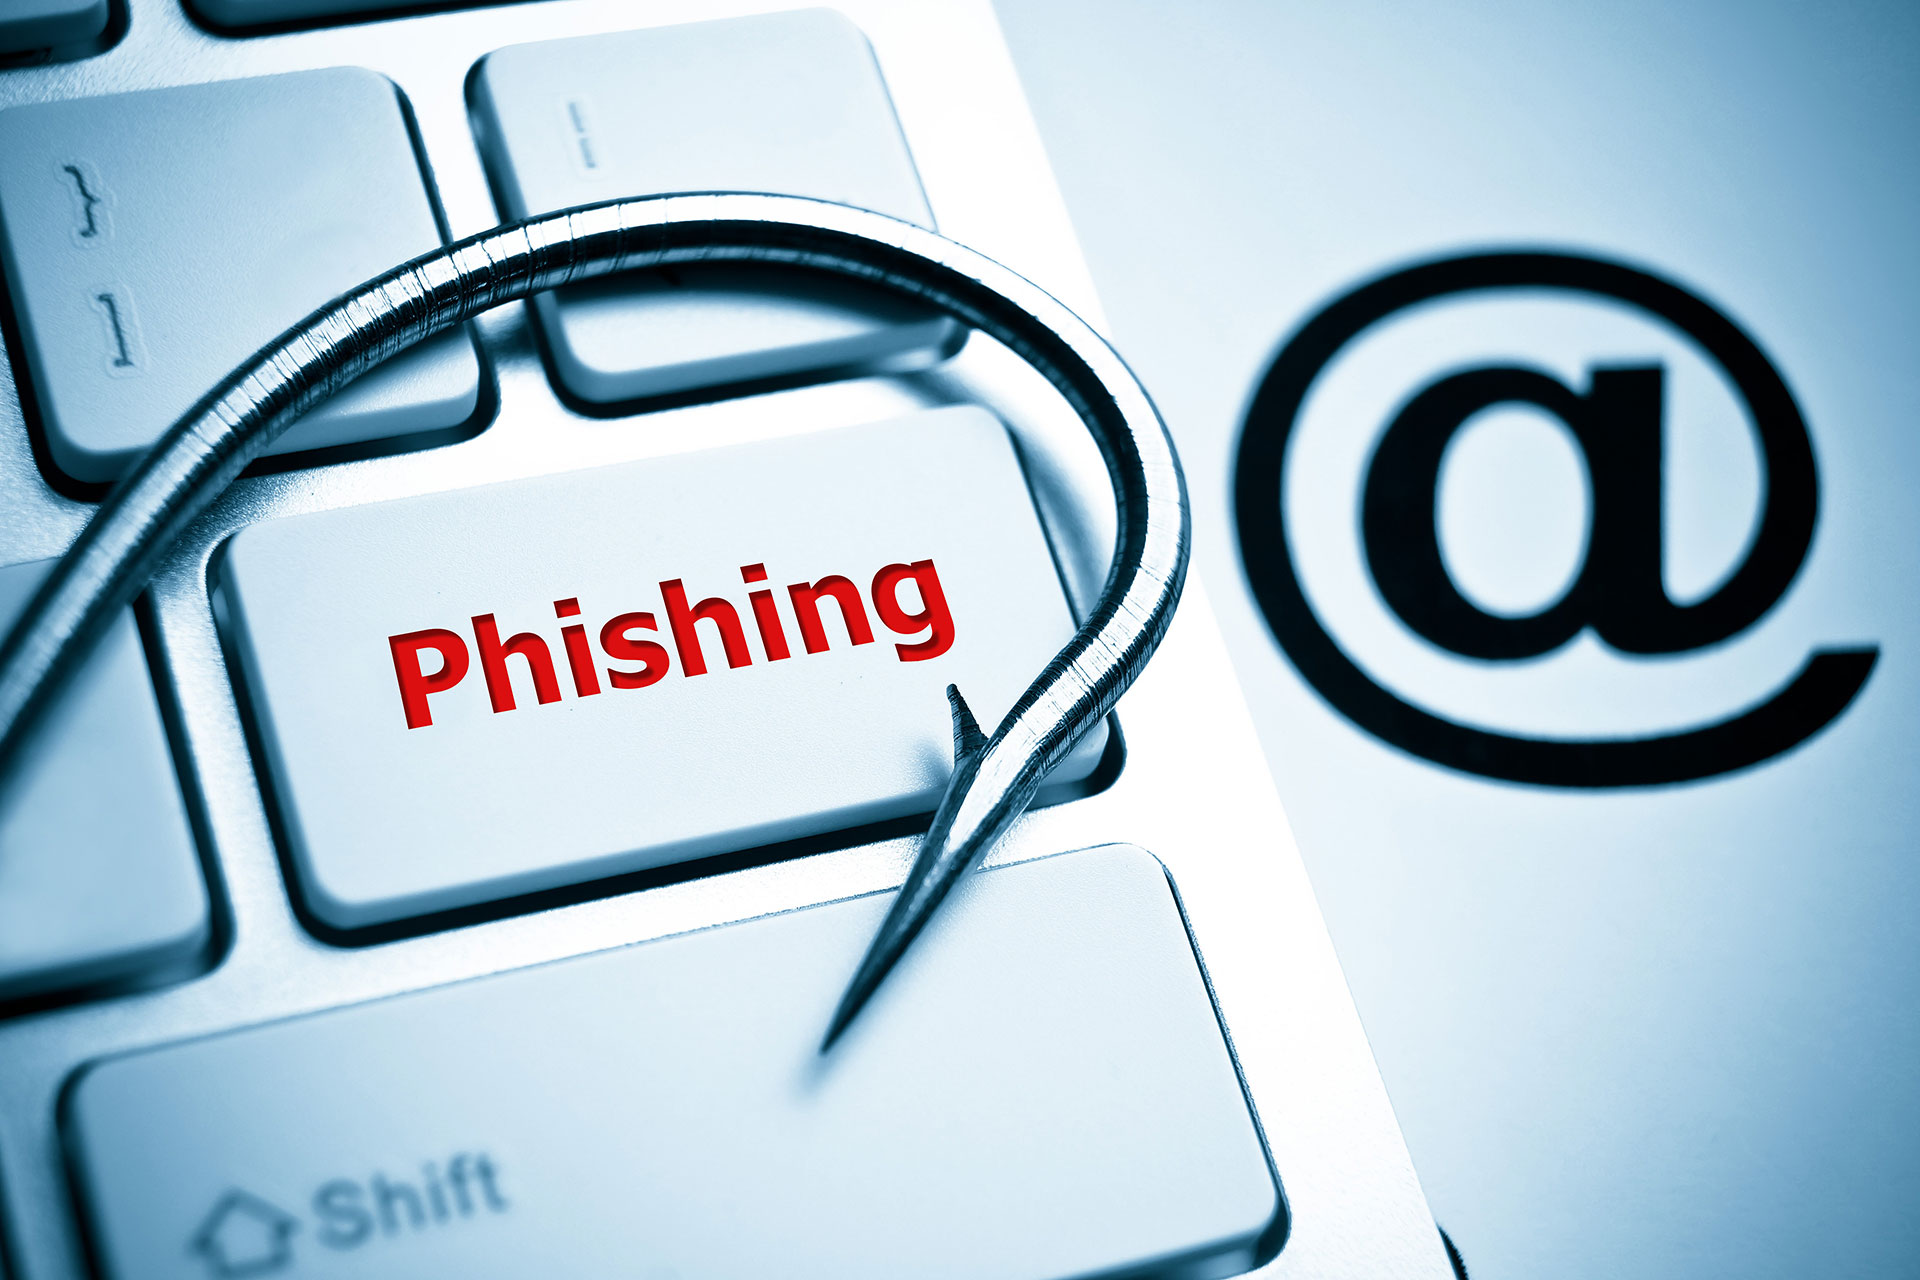 Australia Post Phishing Scam